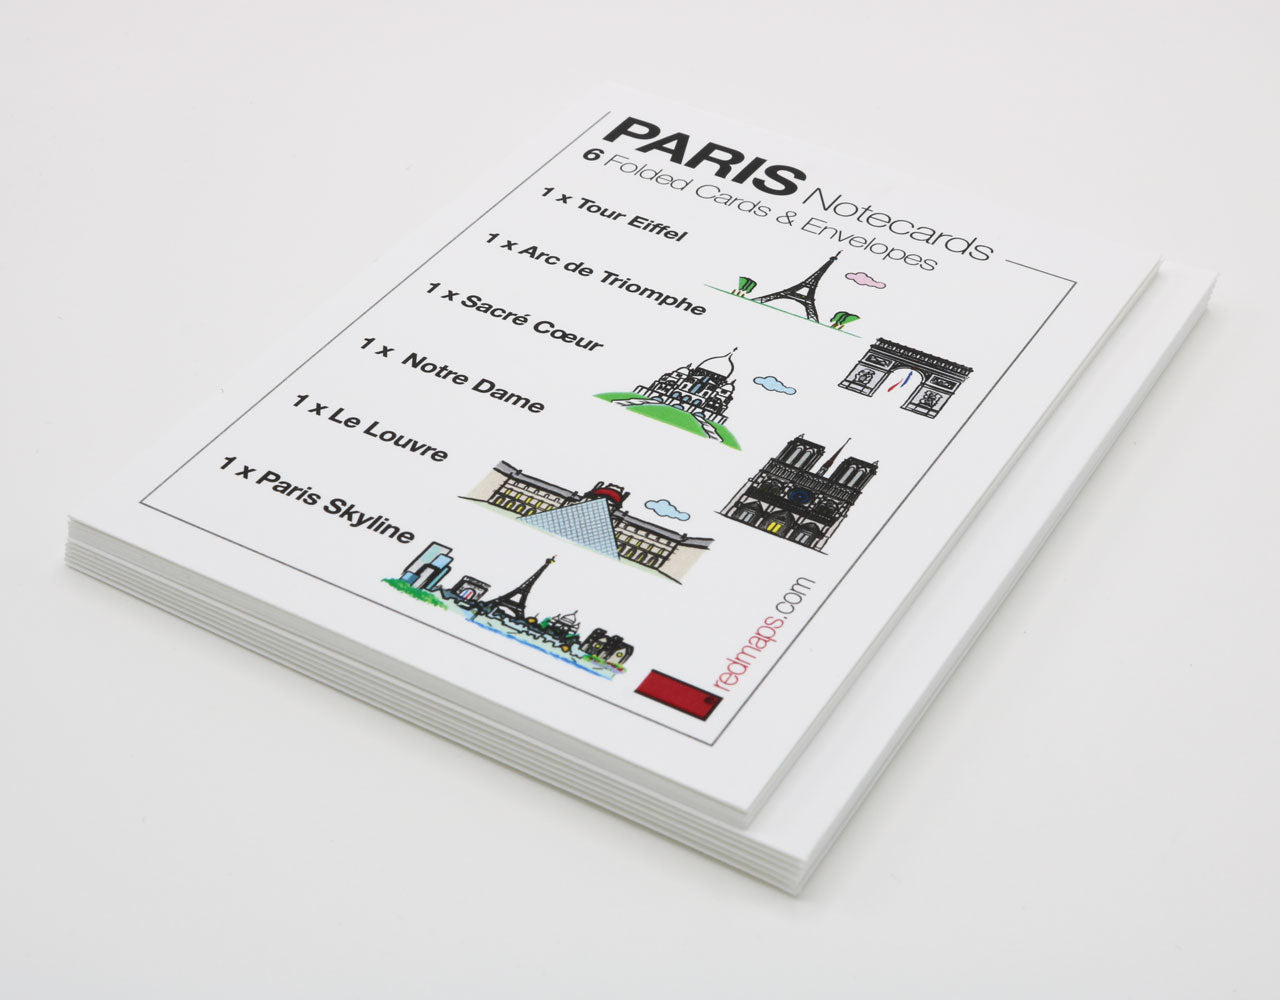 Set of Paris-themed notecards with drawings of famous Paris landmarks